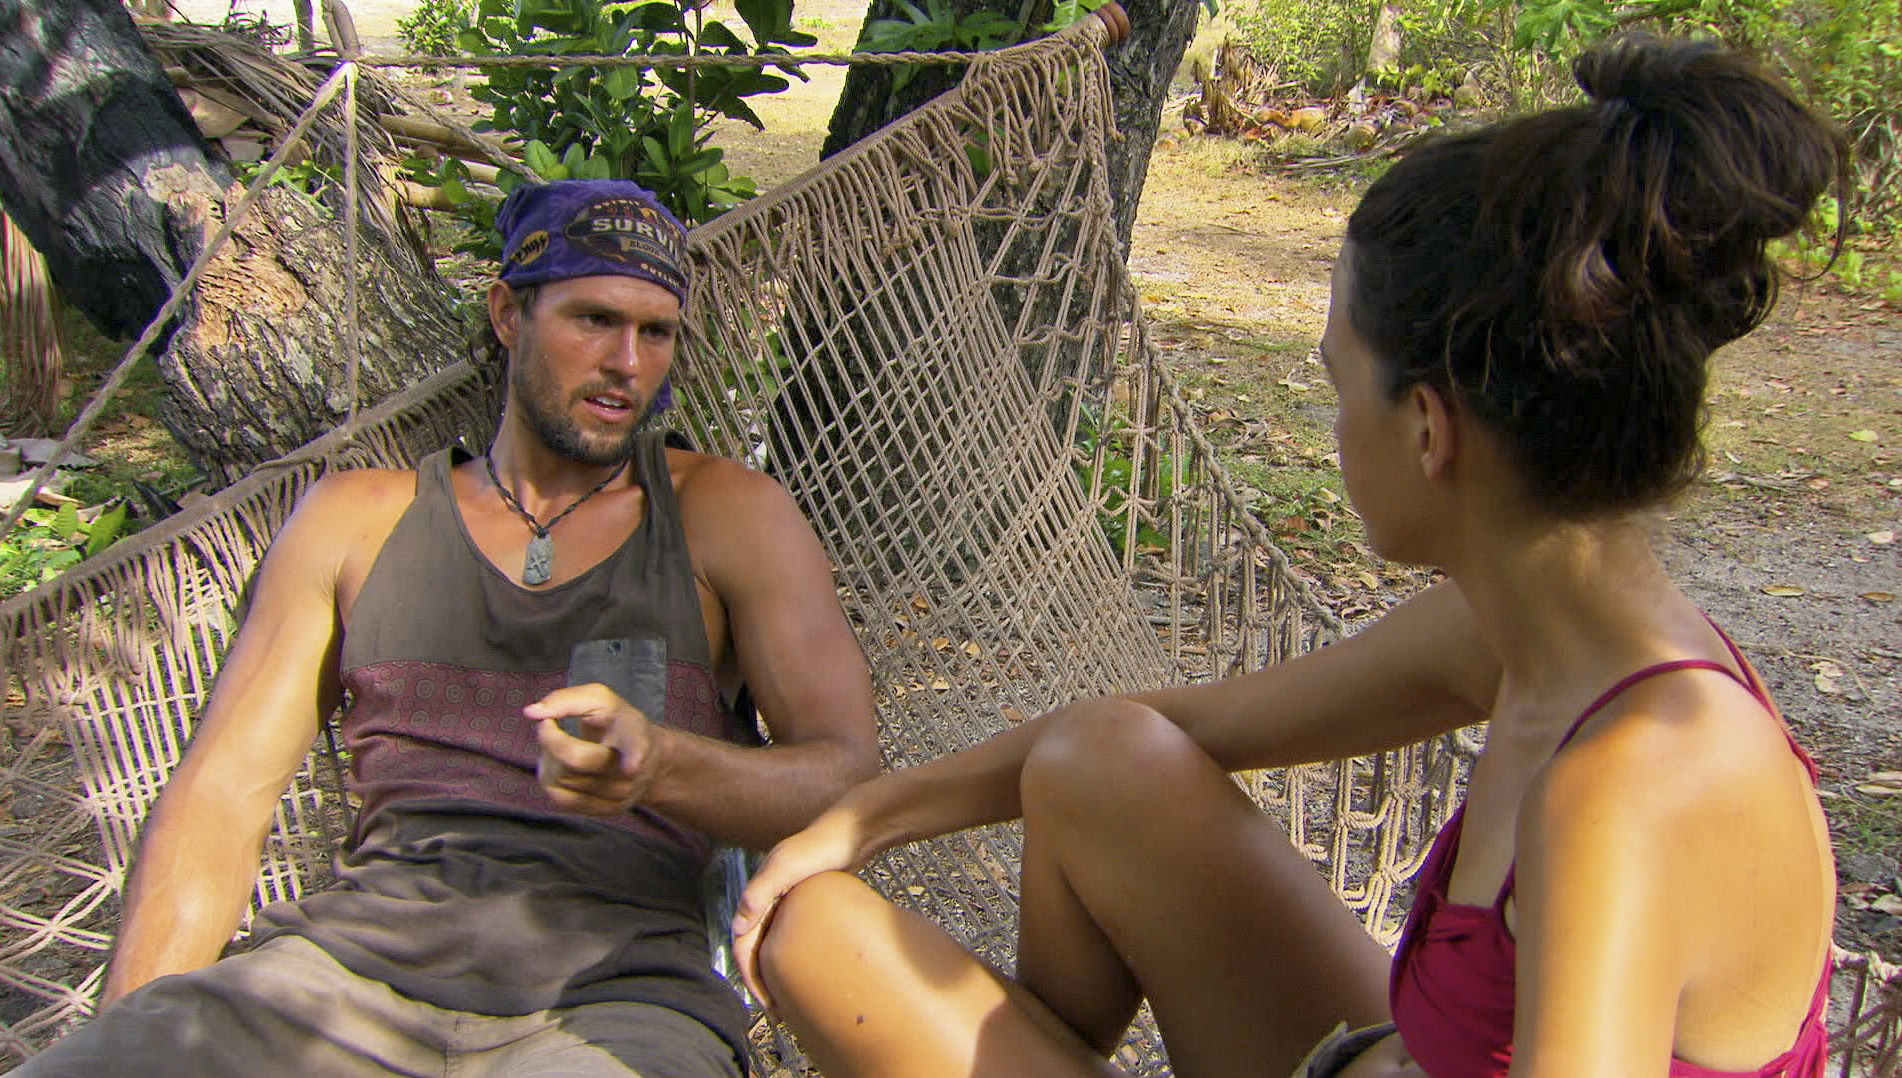 Hayden and Ciera in Season 27 Episode 13